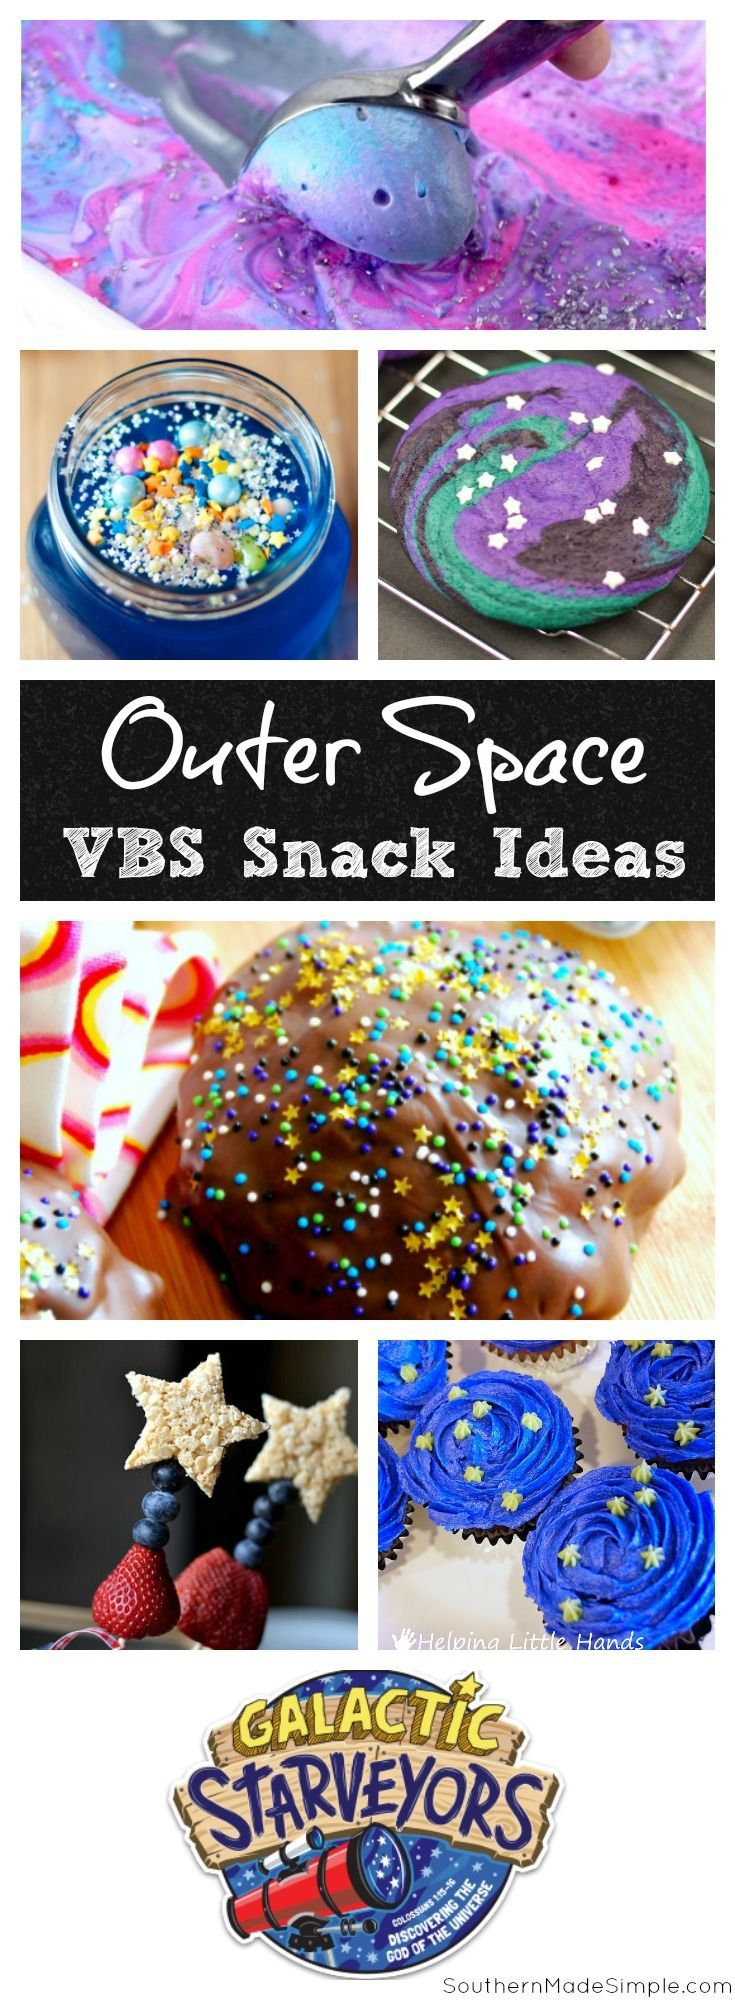 Outer space snack ideas galactic starveyors vbs snacks for Outer space themed fabric